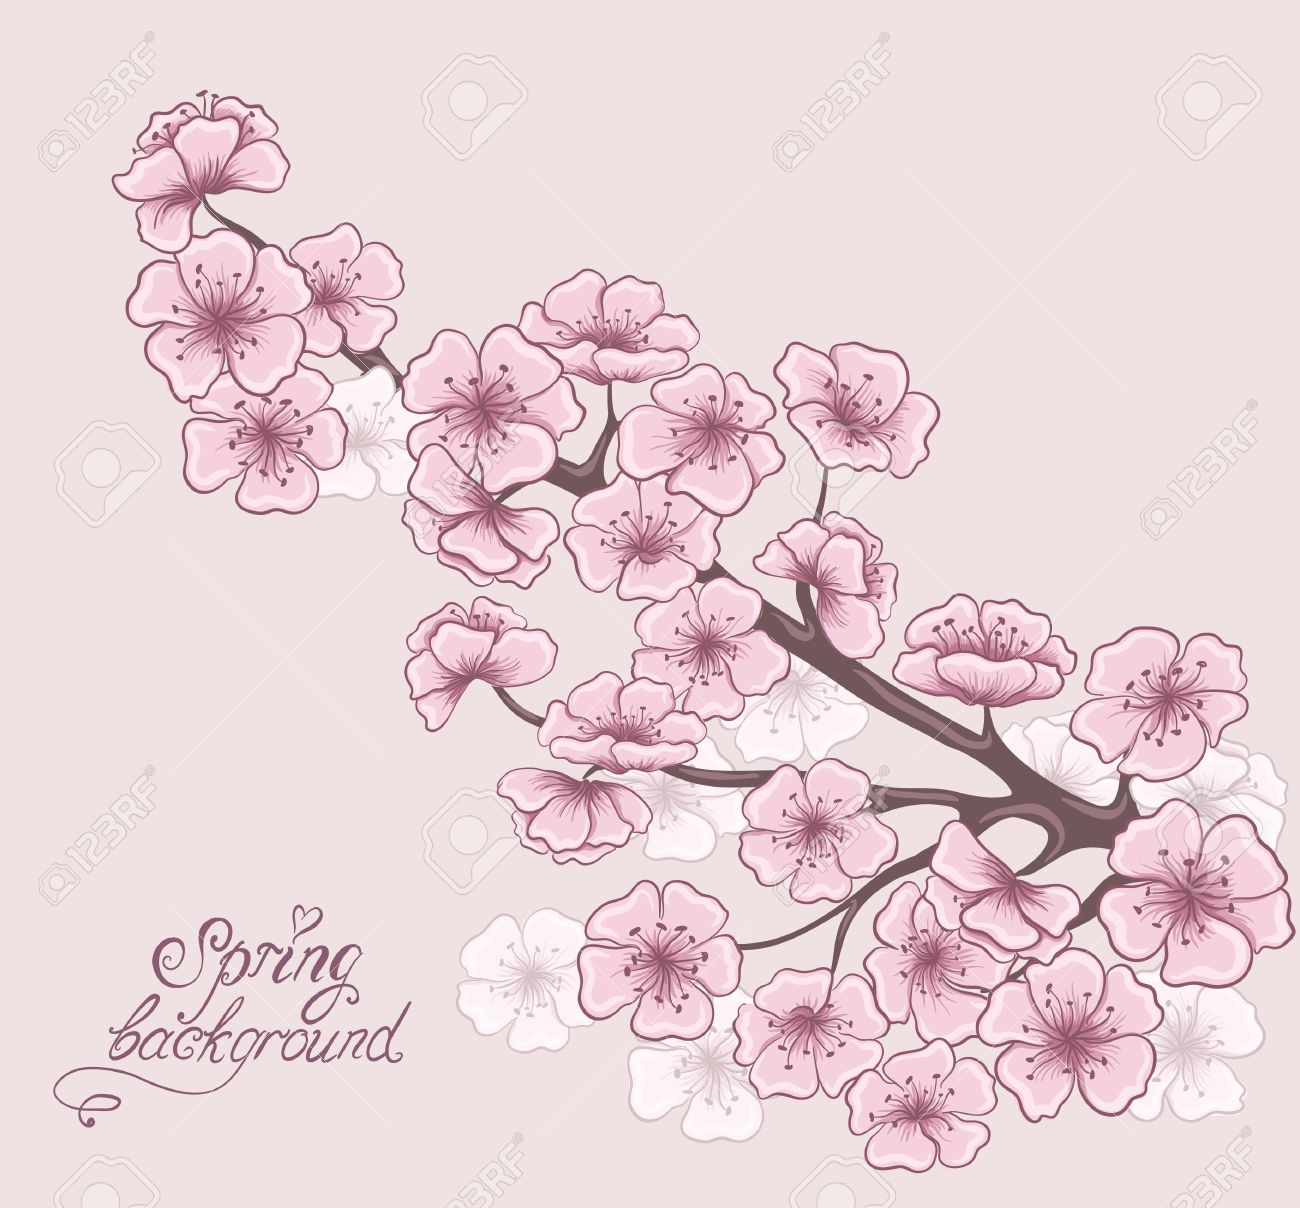 Cherry Branch In Blossom Decorative Spring Floral Background